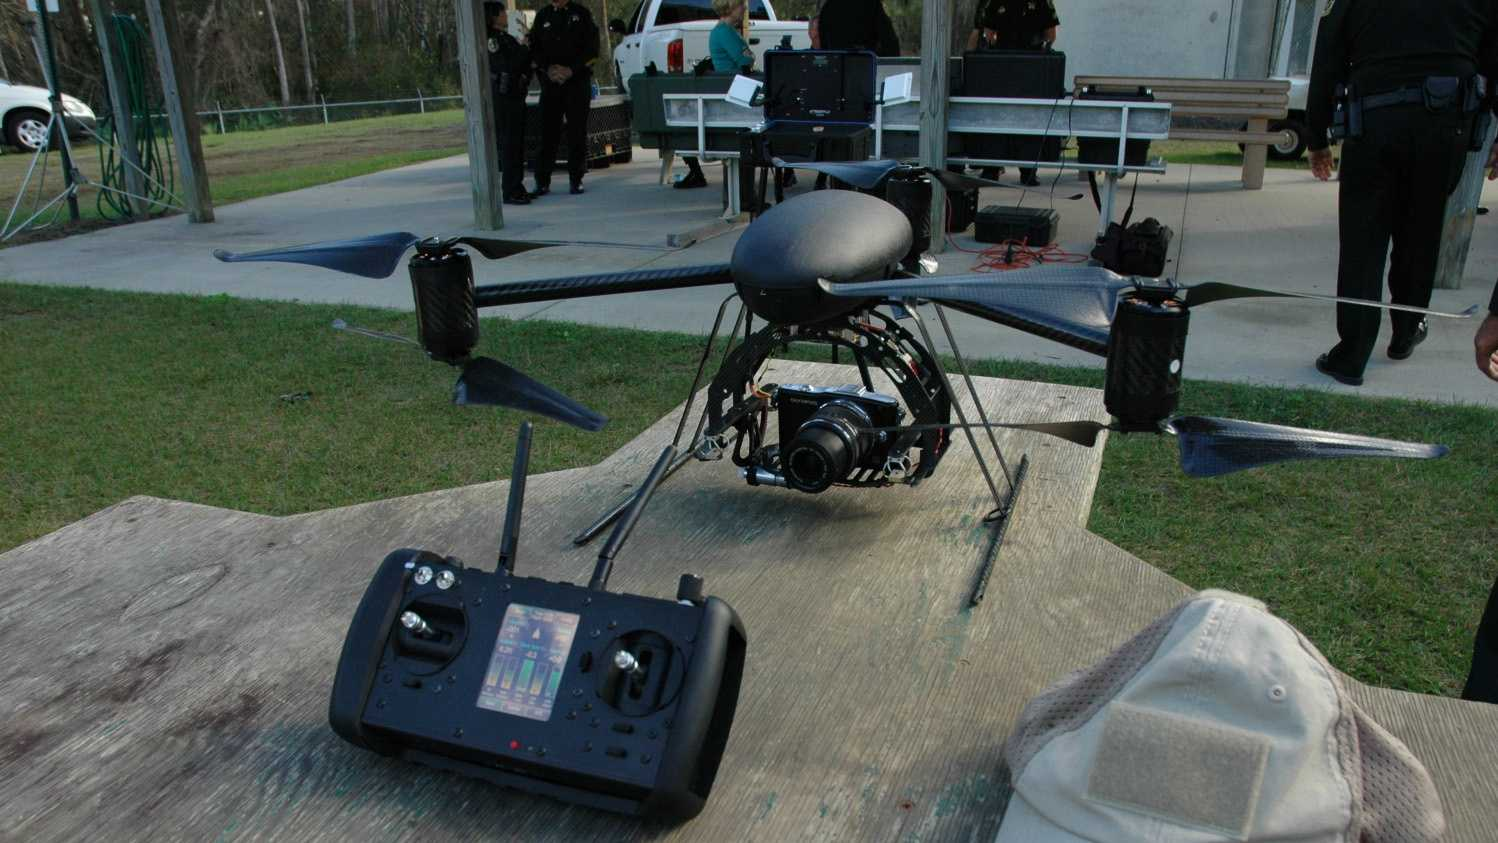 The Orange County Sheriff's Office is showing off its new $25,000 surveillance drones.